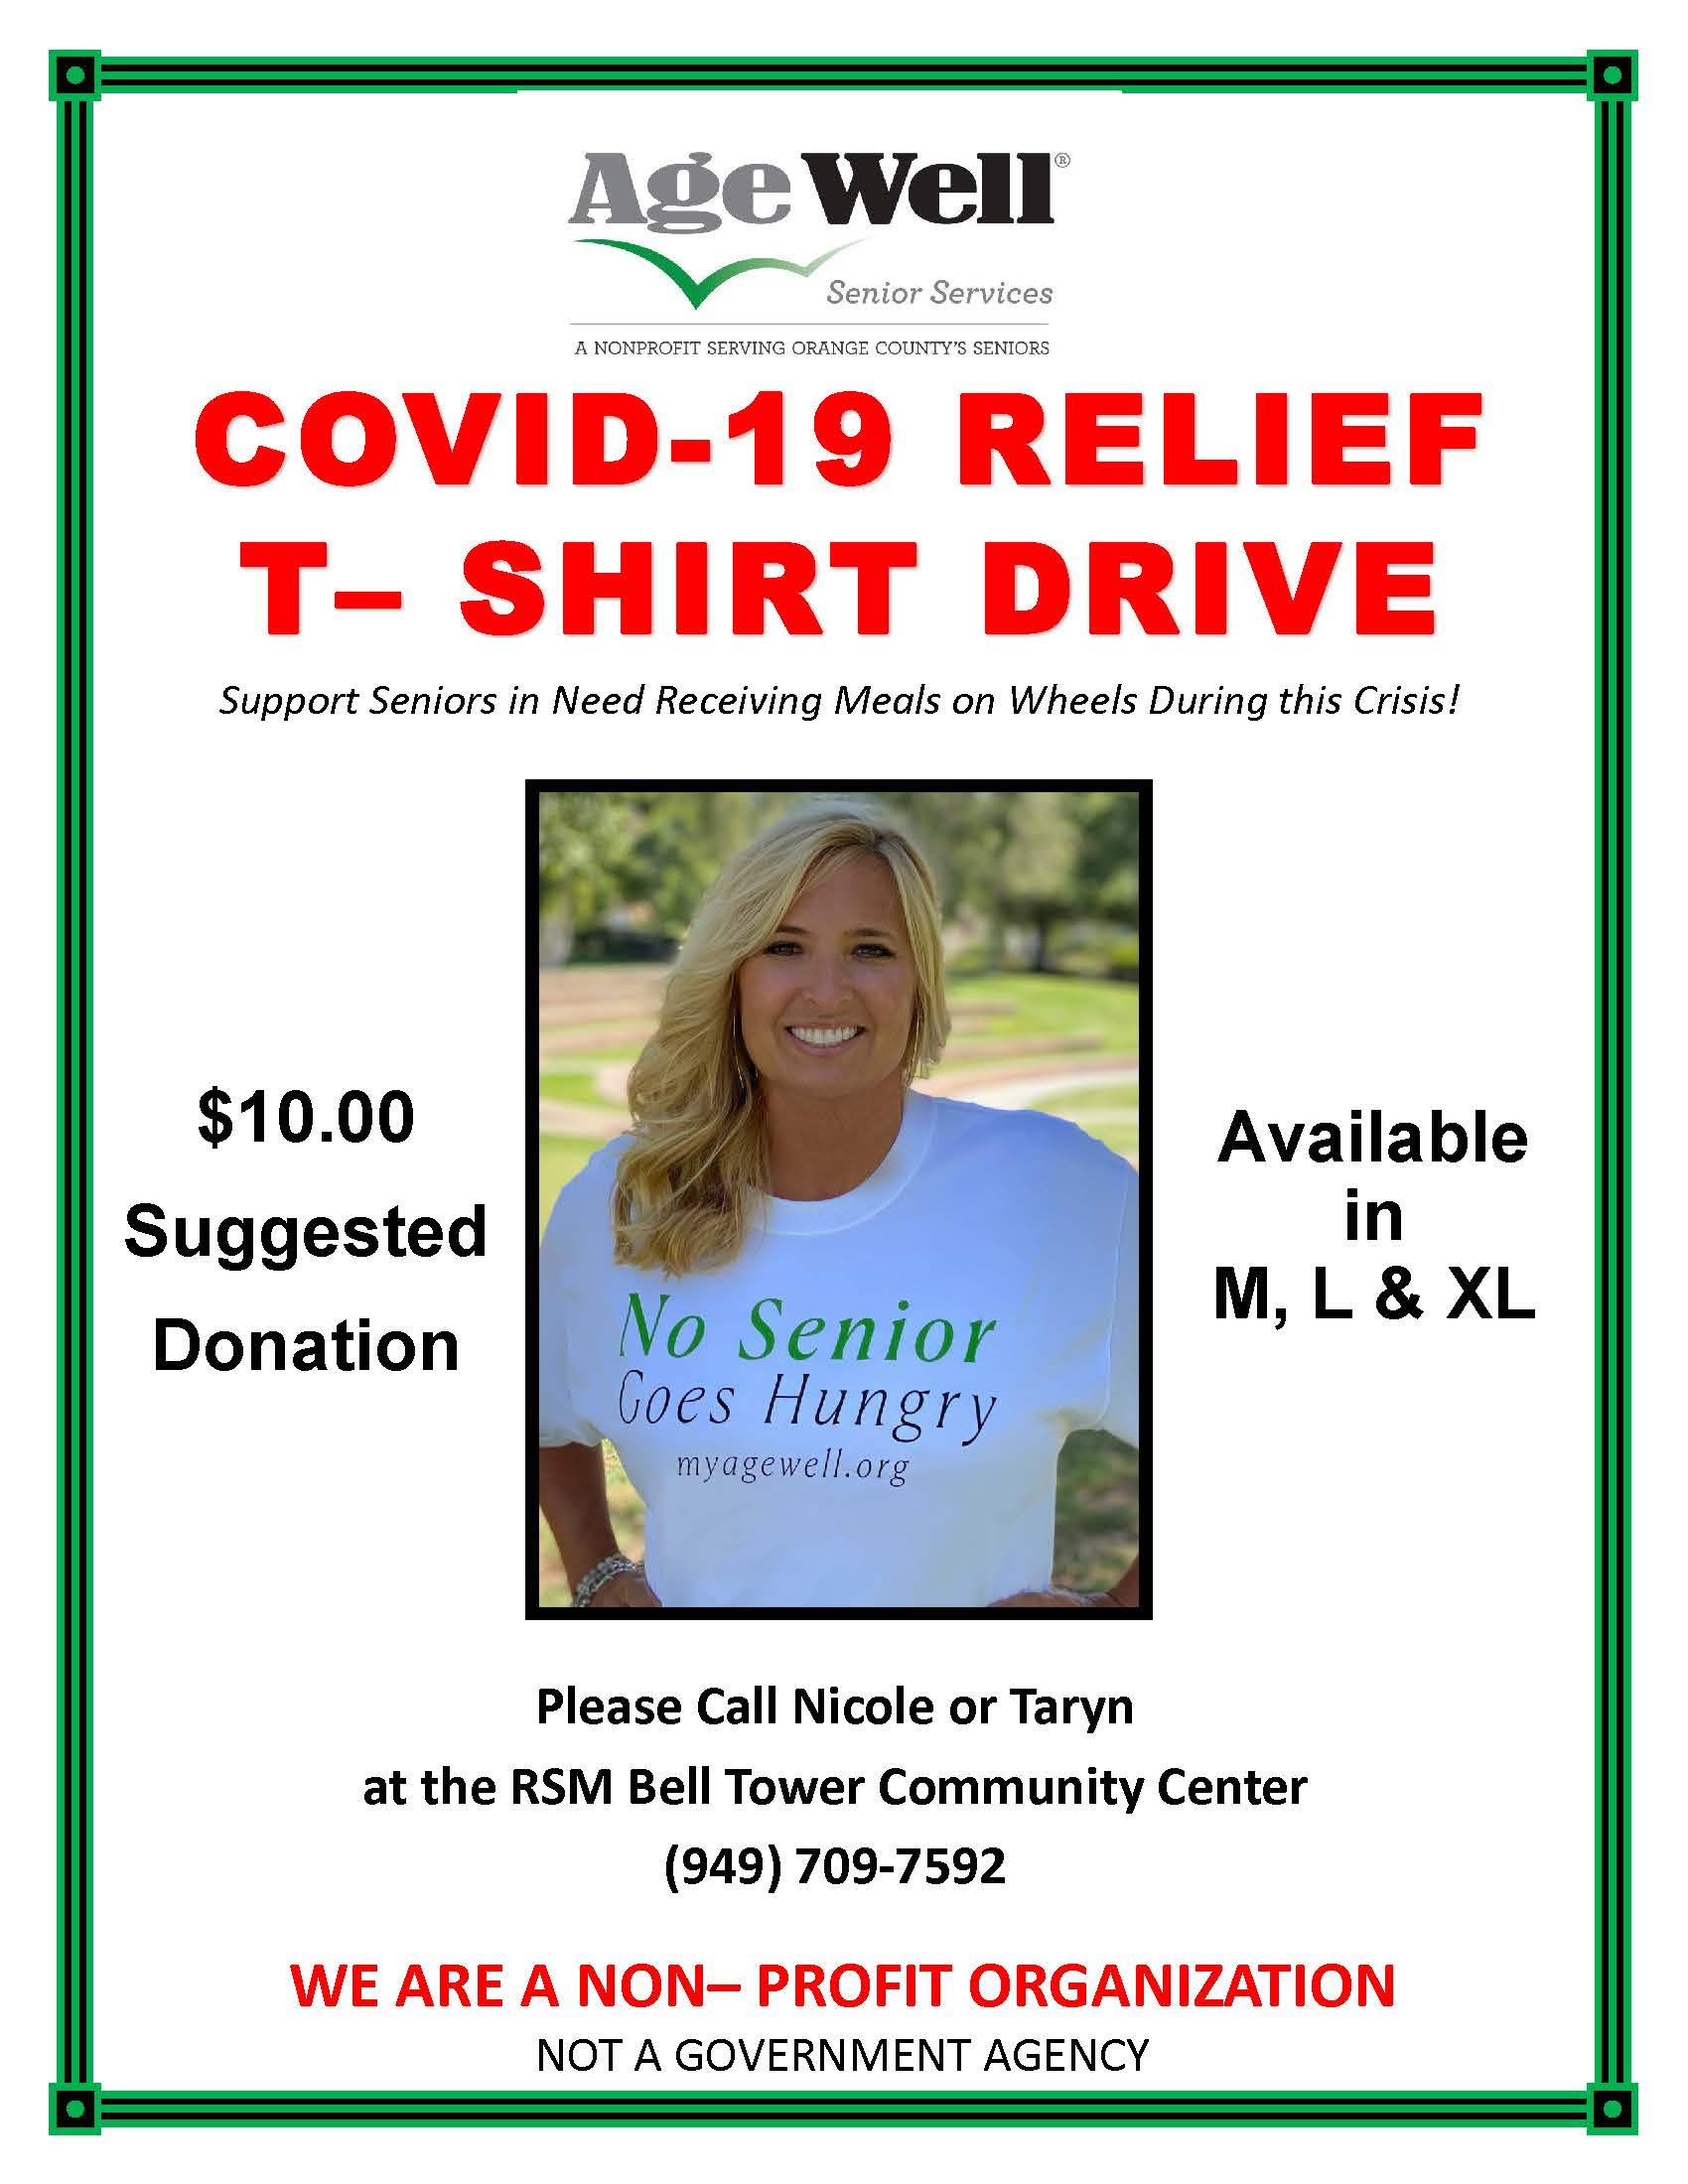 COVID RELIEF T-SHIRT DRIVE flyer 07202020